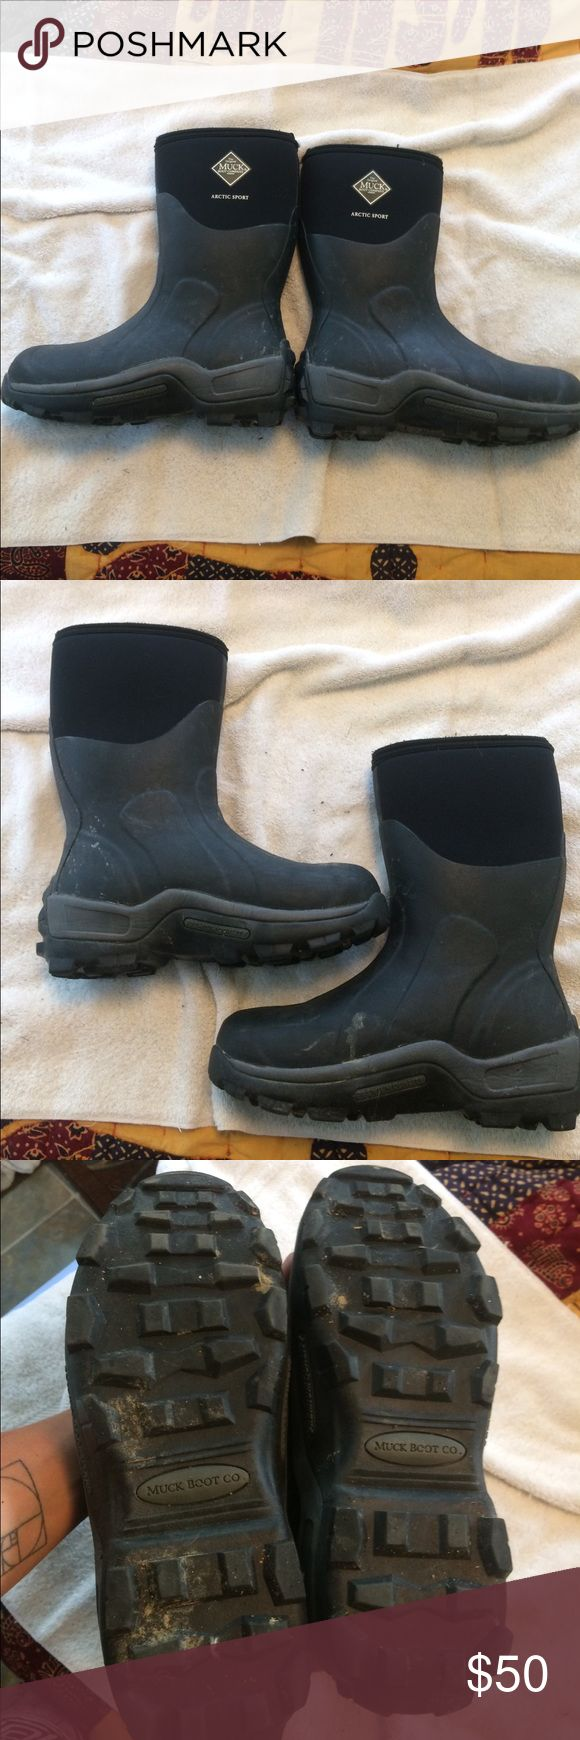 Muck boots. Used and clean inside original arctic sport Muck boots. Unisex women's size 9-9.5 or men's 8/8.5. Sorry about a little dirt still on the soles. Muck Shoes Winter & Rain Boots